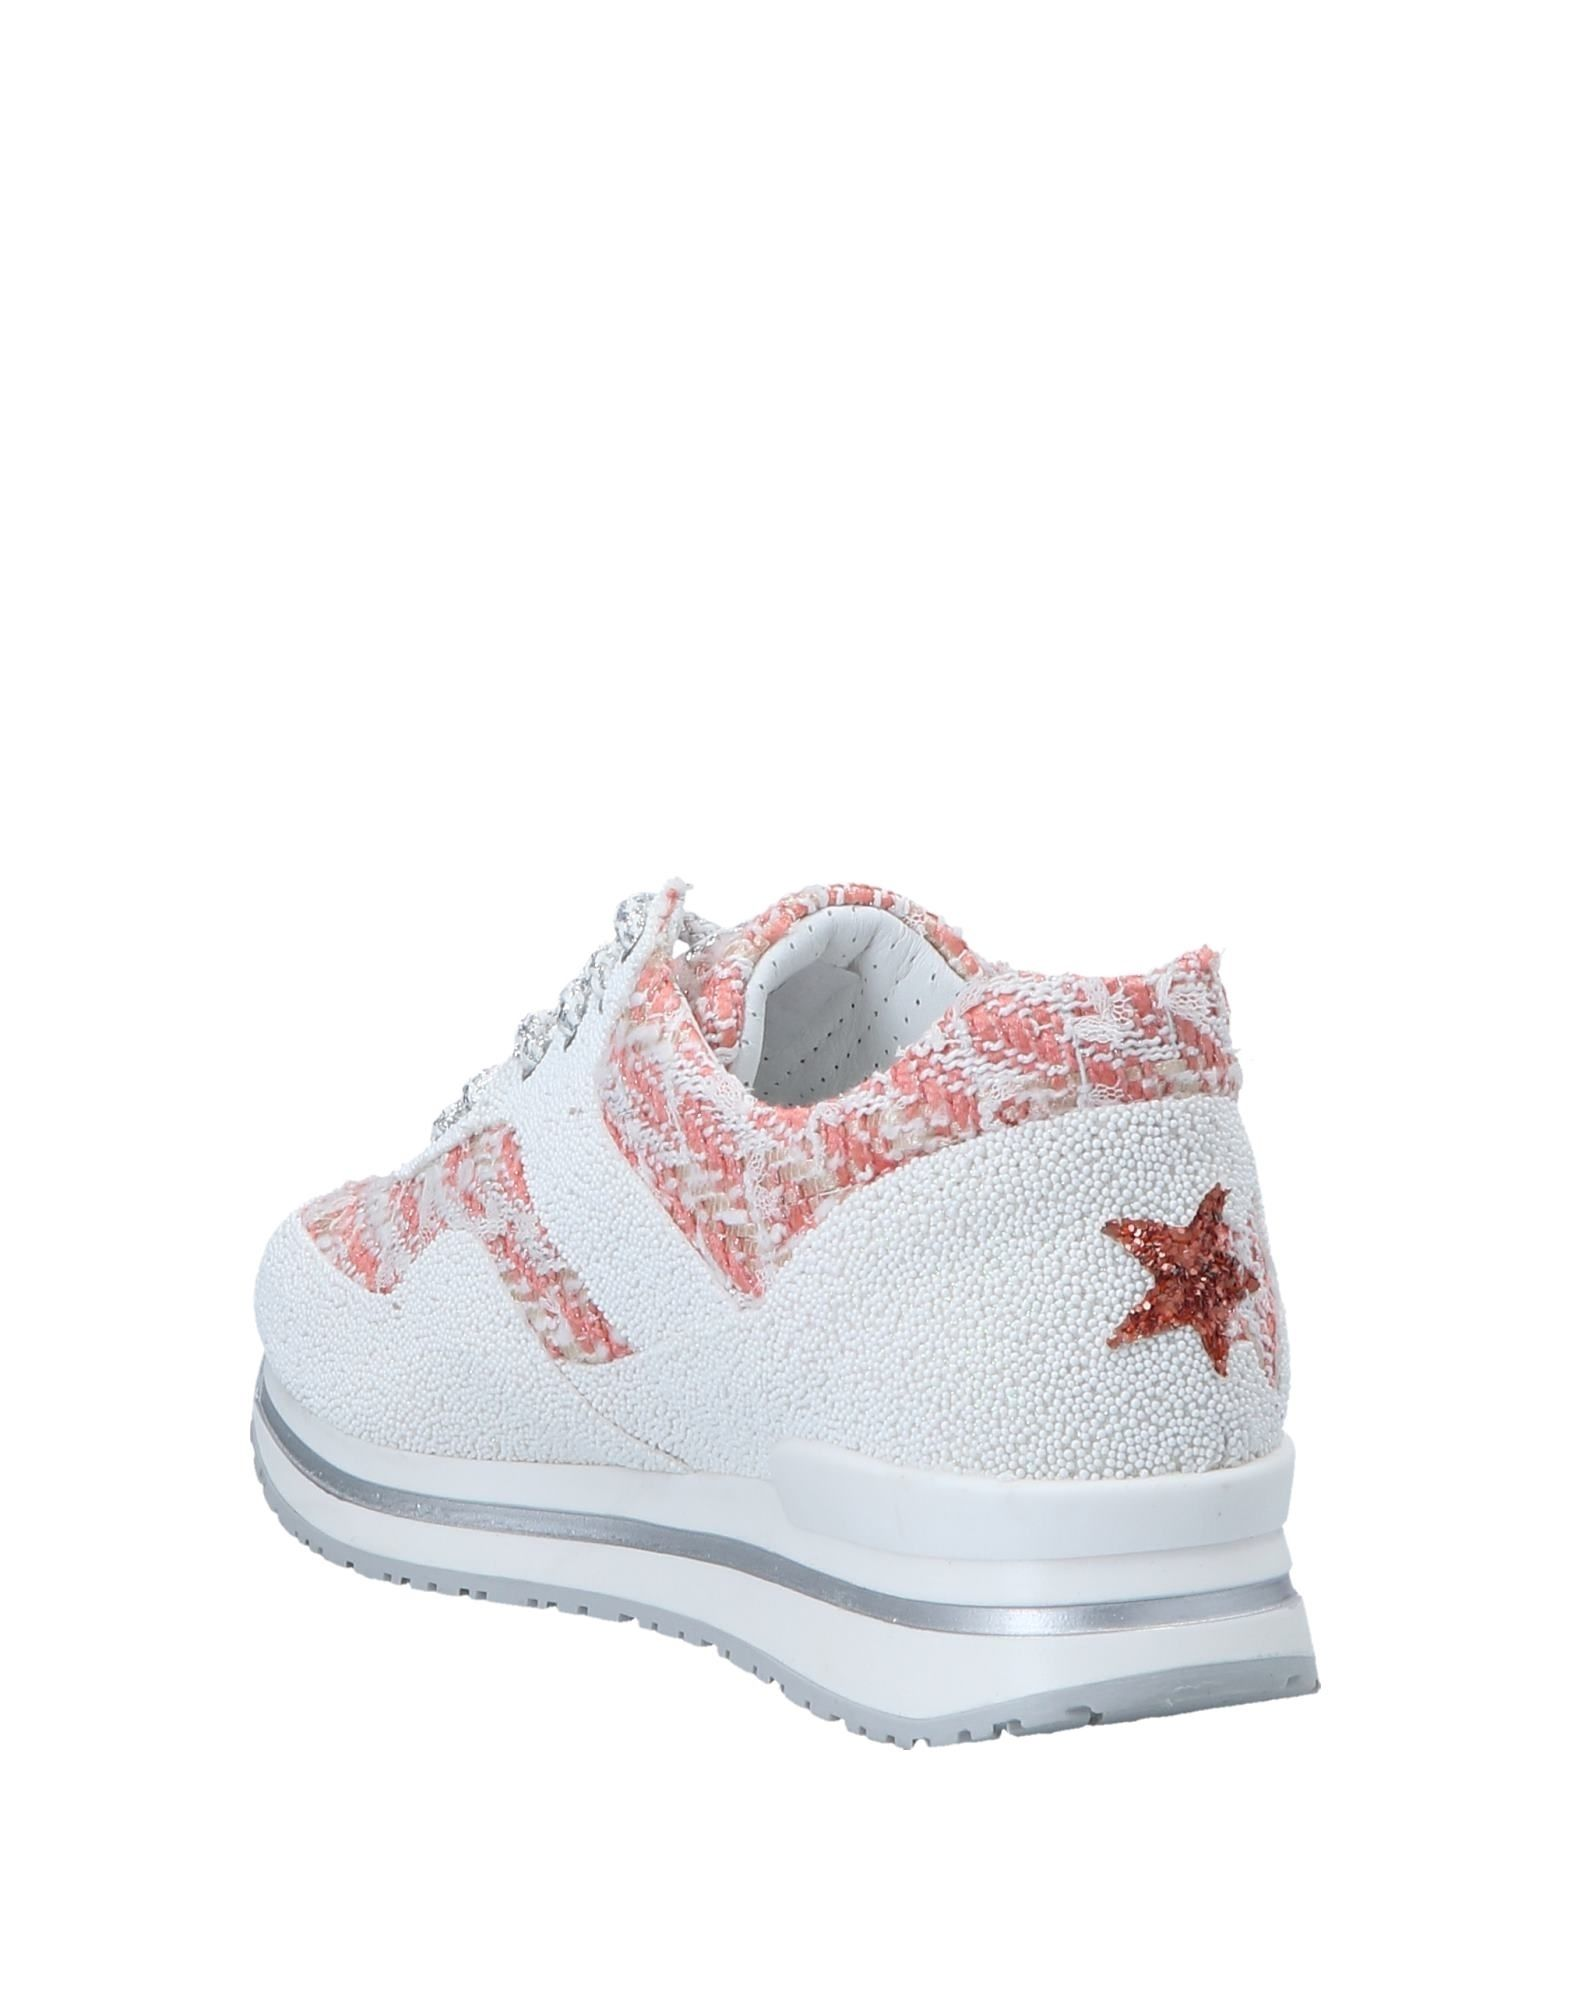 2Star Sneakers Damen  11548893LF 11548893LF   fe8621